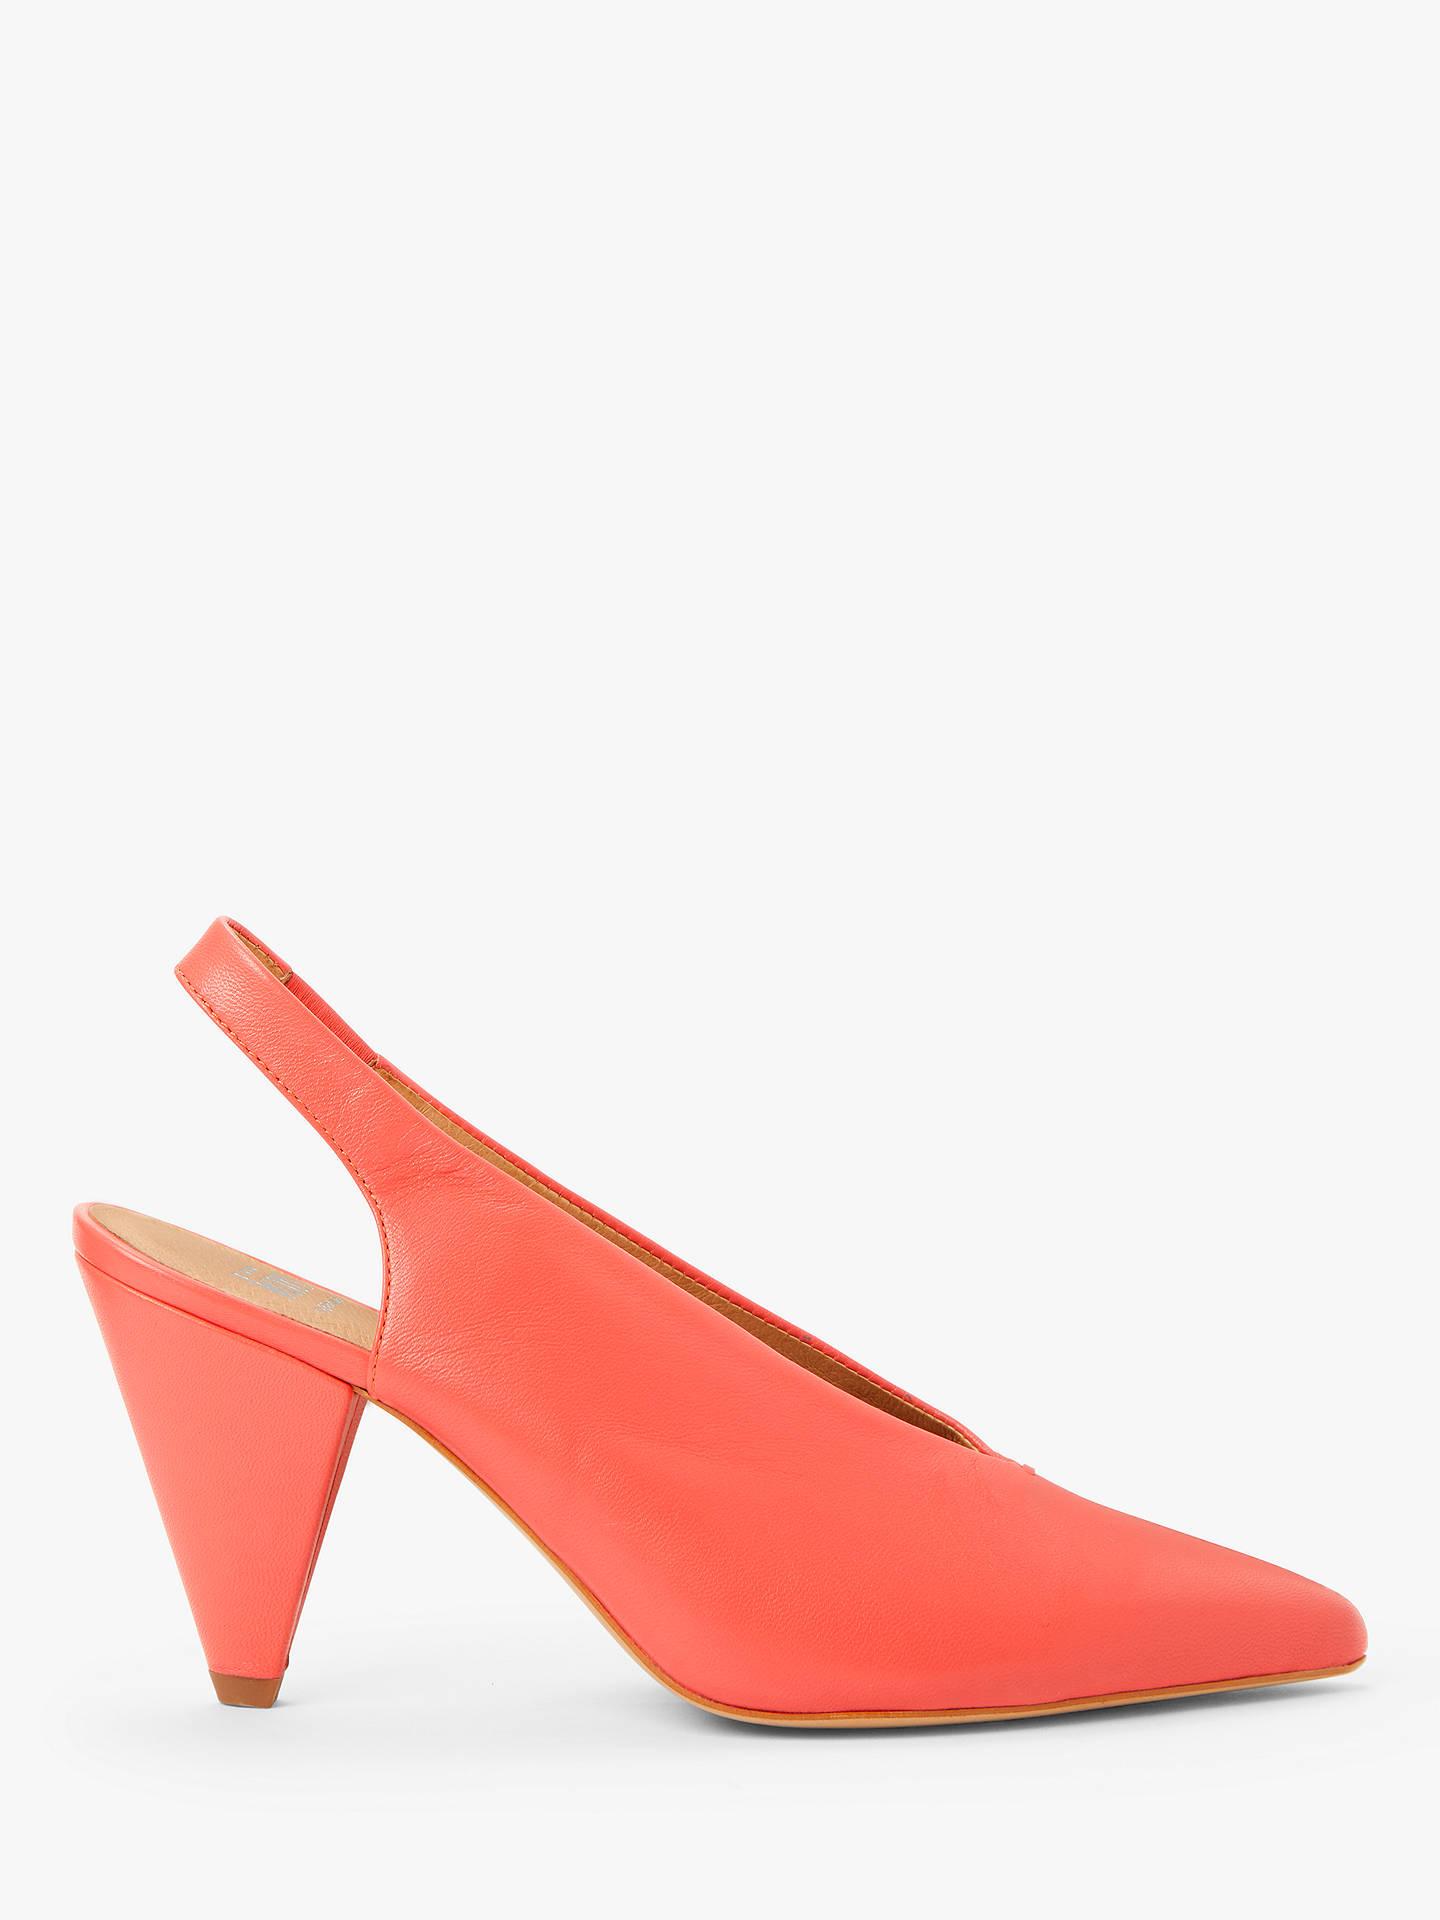 dfccb20a6d56 Buy Kin Carina Cone Heel Slingback Court Shoes